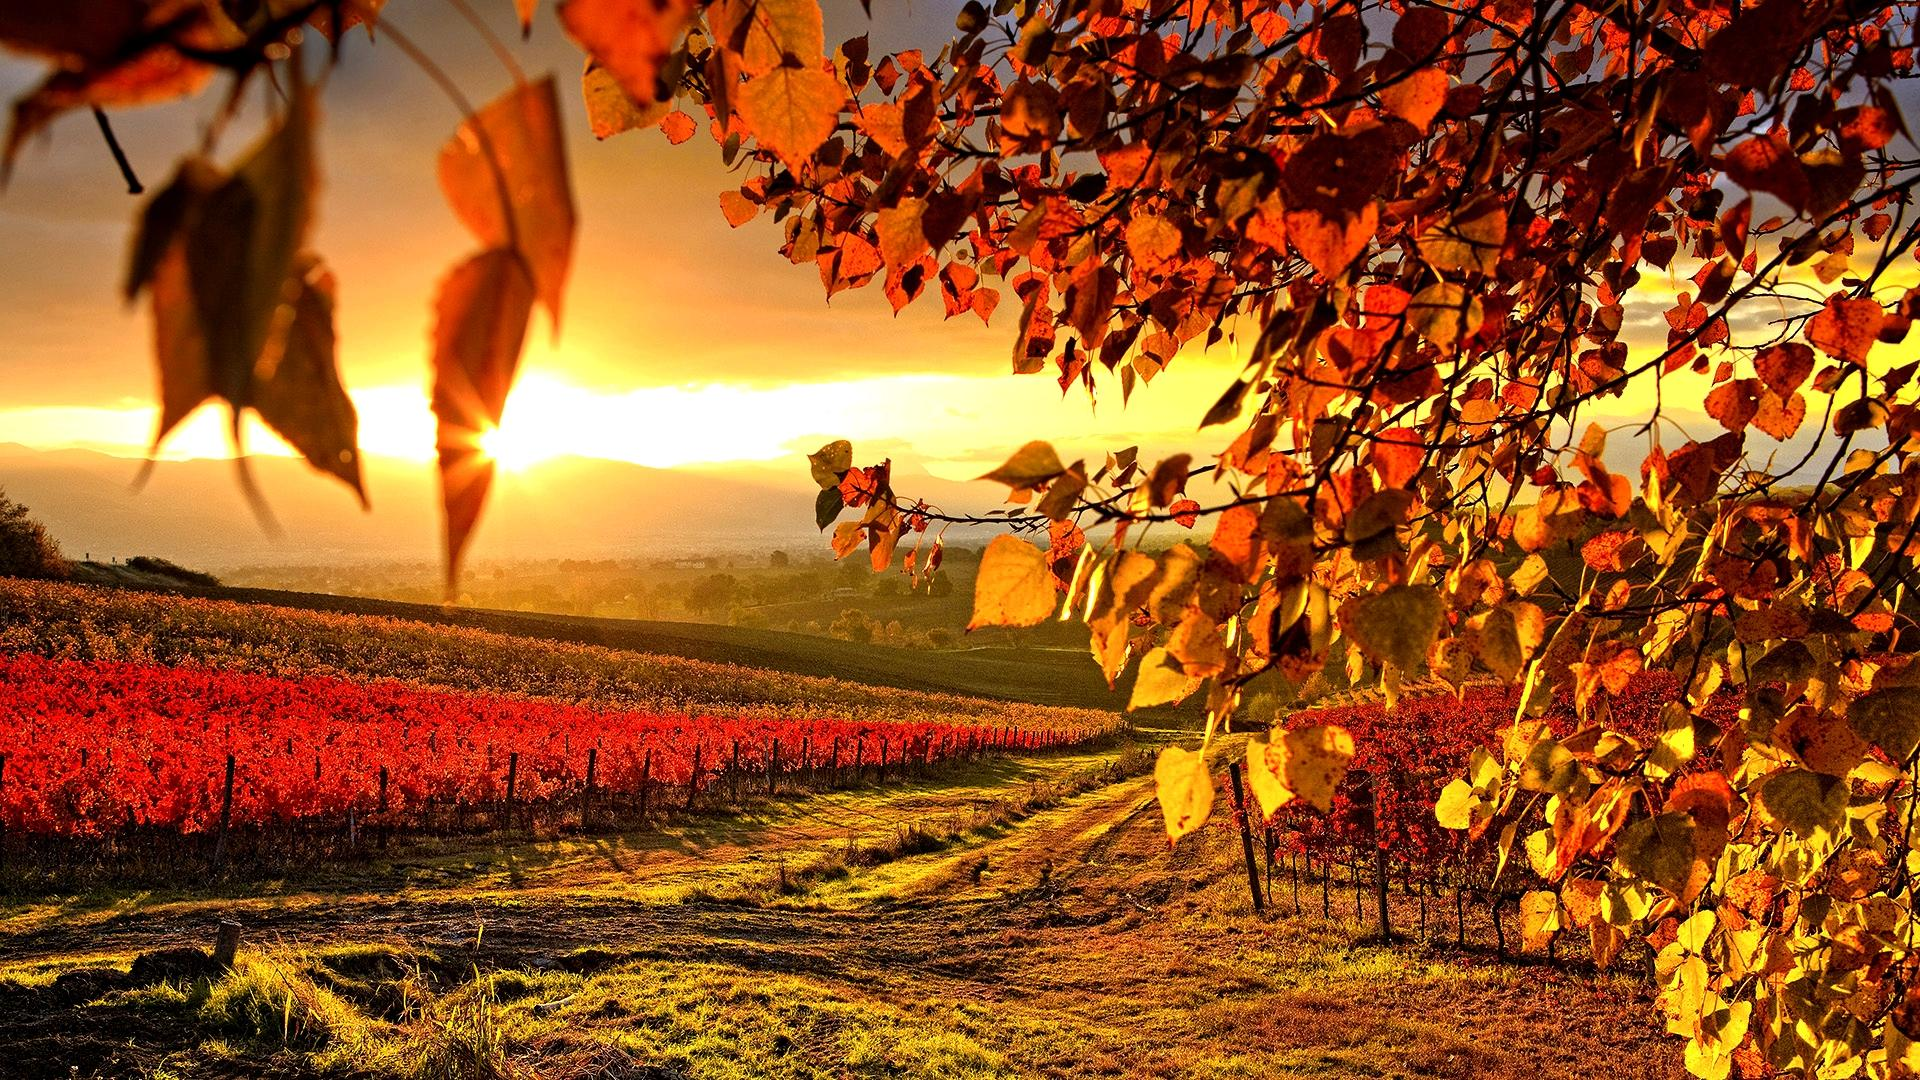 http://wewinelovers.wehomeowners.com/wp-content/uploads/2016/08/Beautiful-Vineyard-Autumn-Wallpaper-Full-HD.jpg